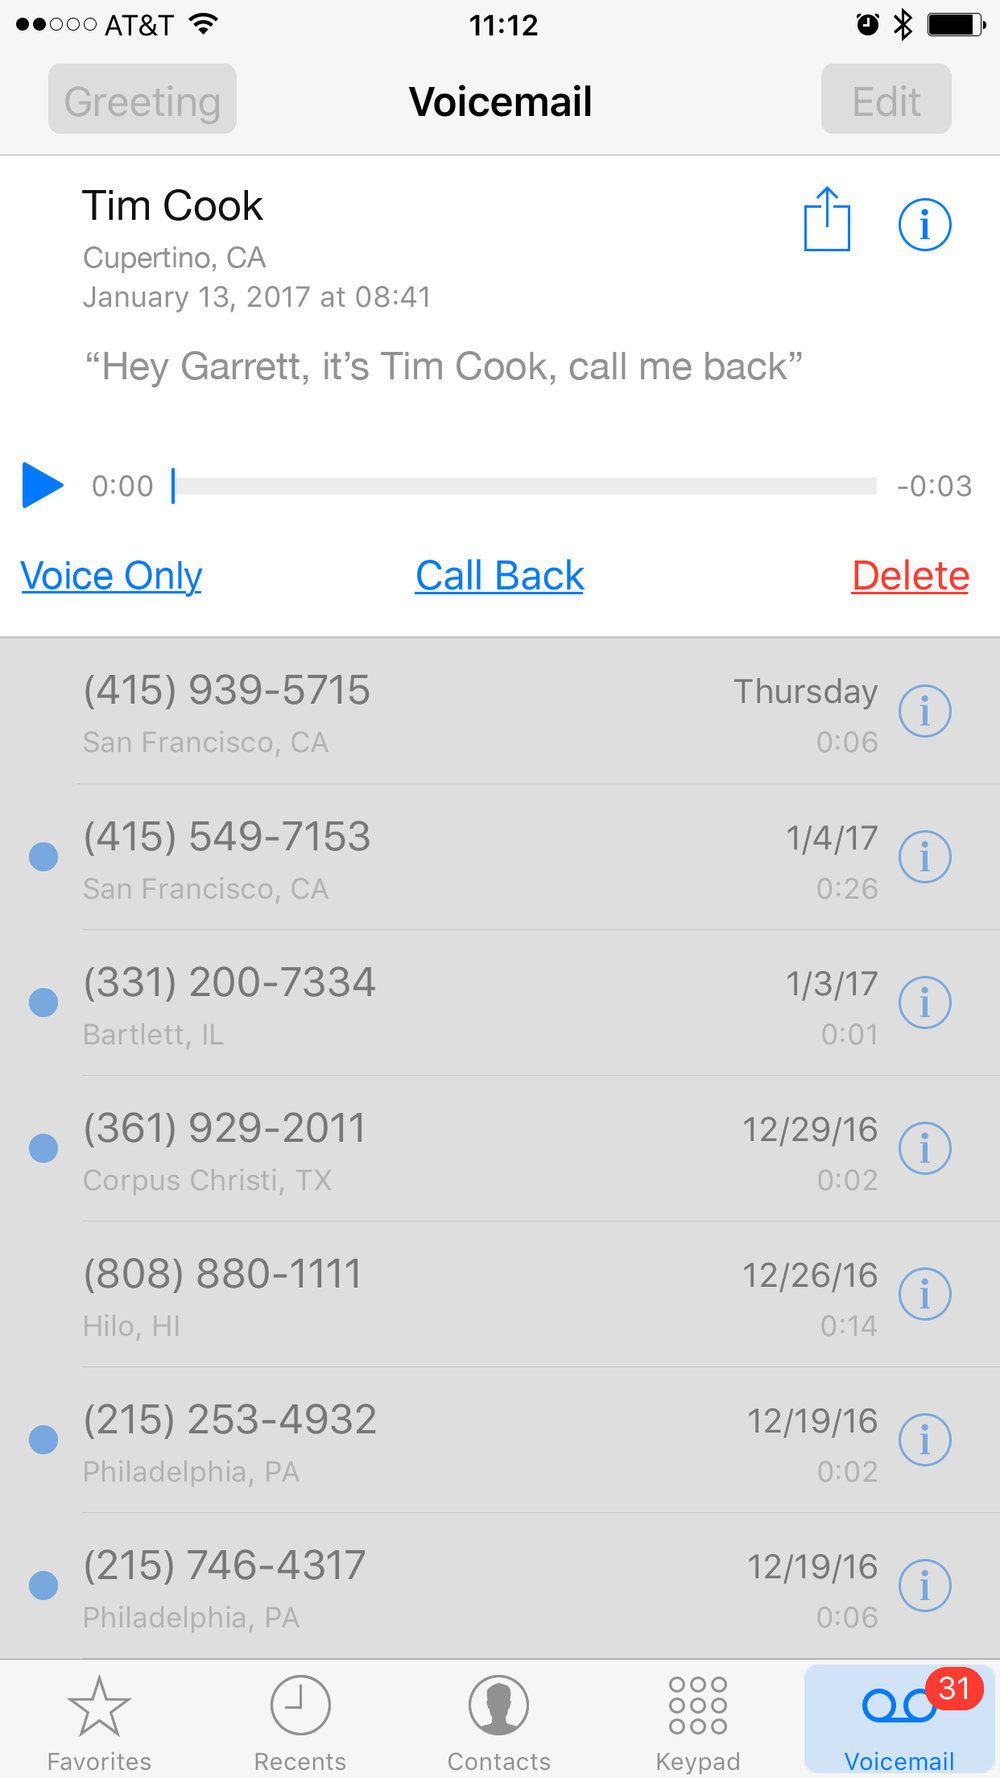 Video Messages display in the same list as Voice Messages. Option for voice only or full vid.